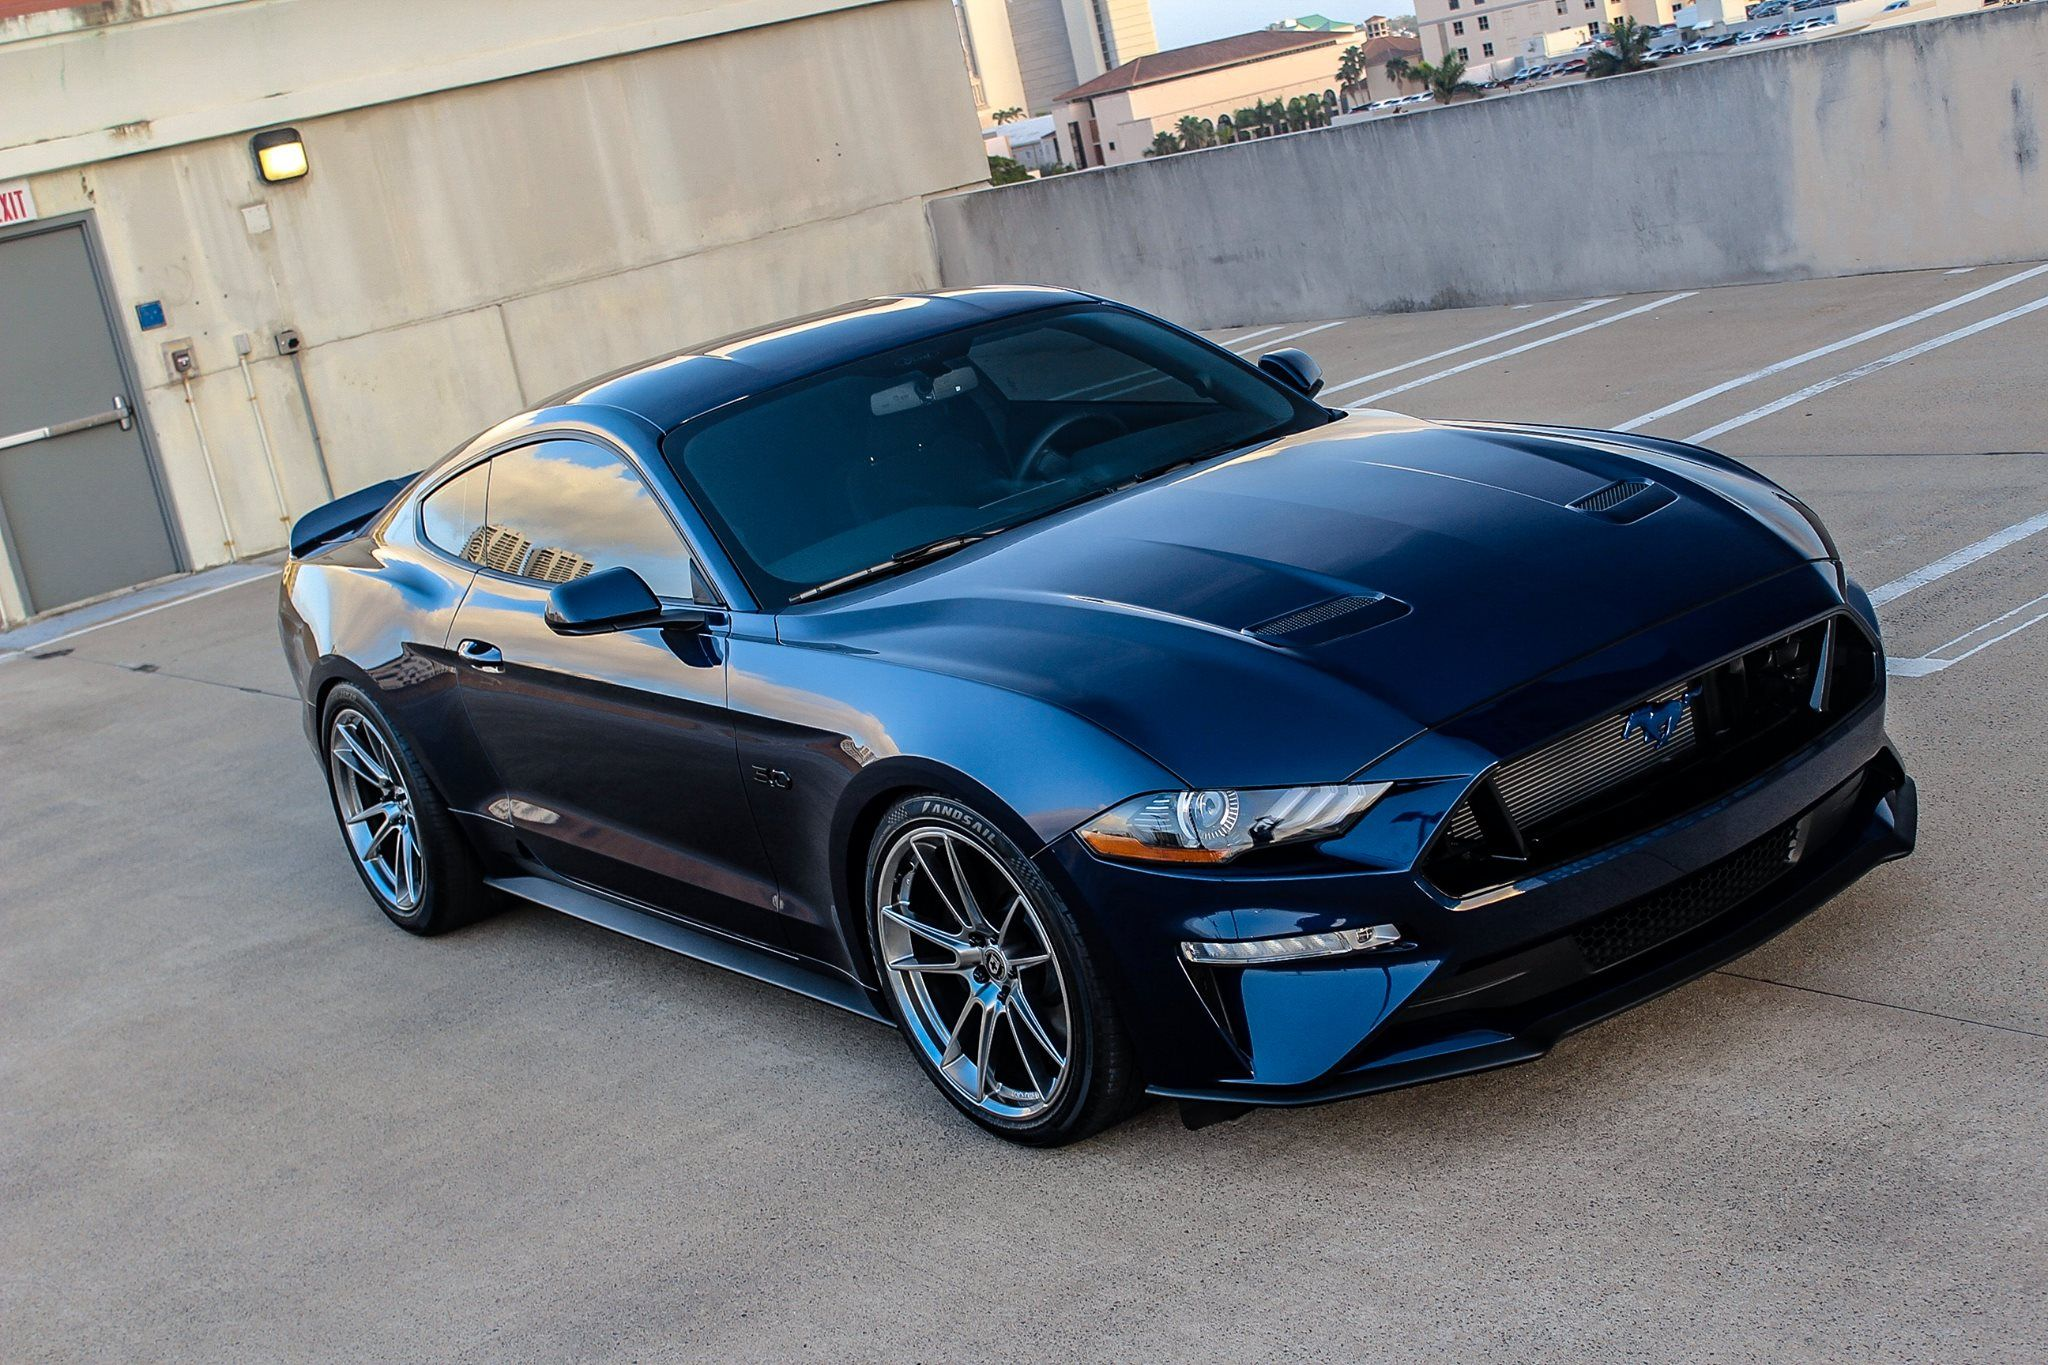 Steve G Has One Good Looking 2018mustang Check Out Facebook And